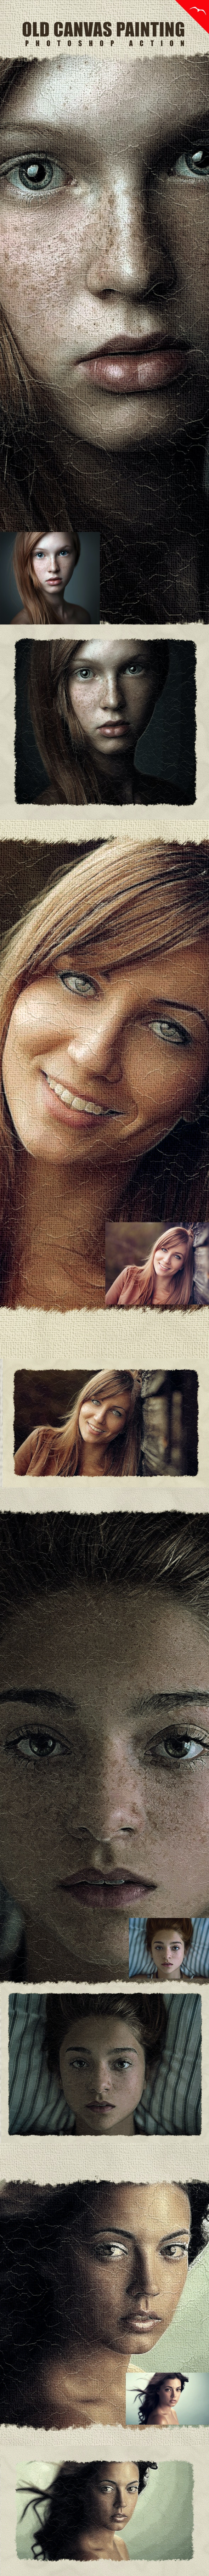 Old Painting Effect - Photo Effects Actions